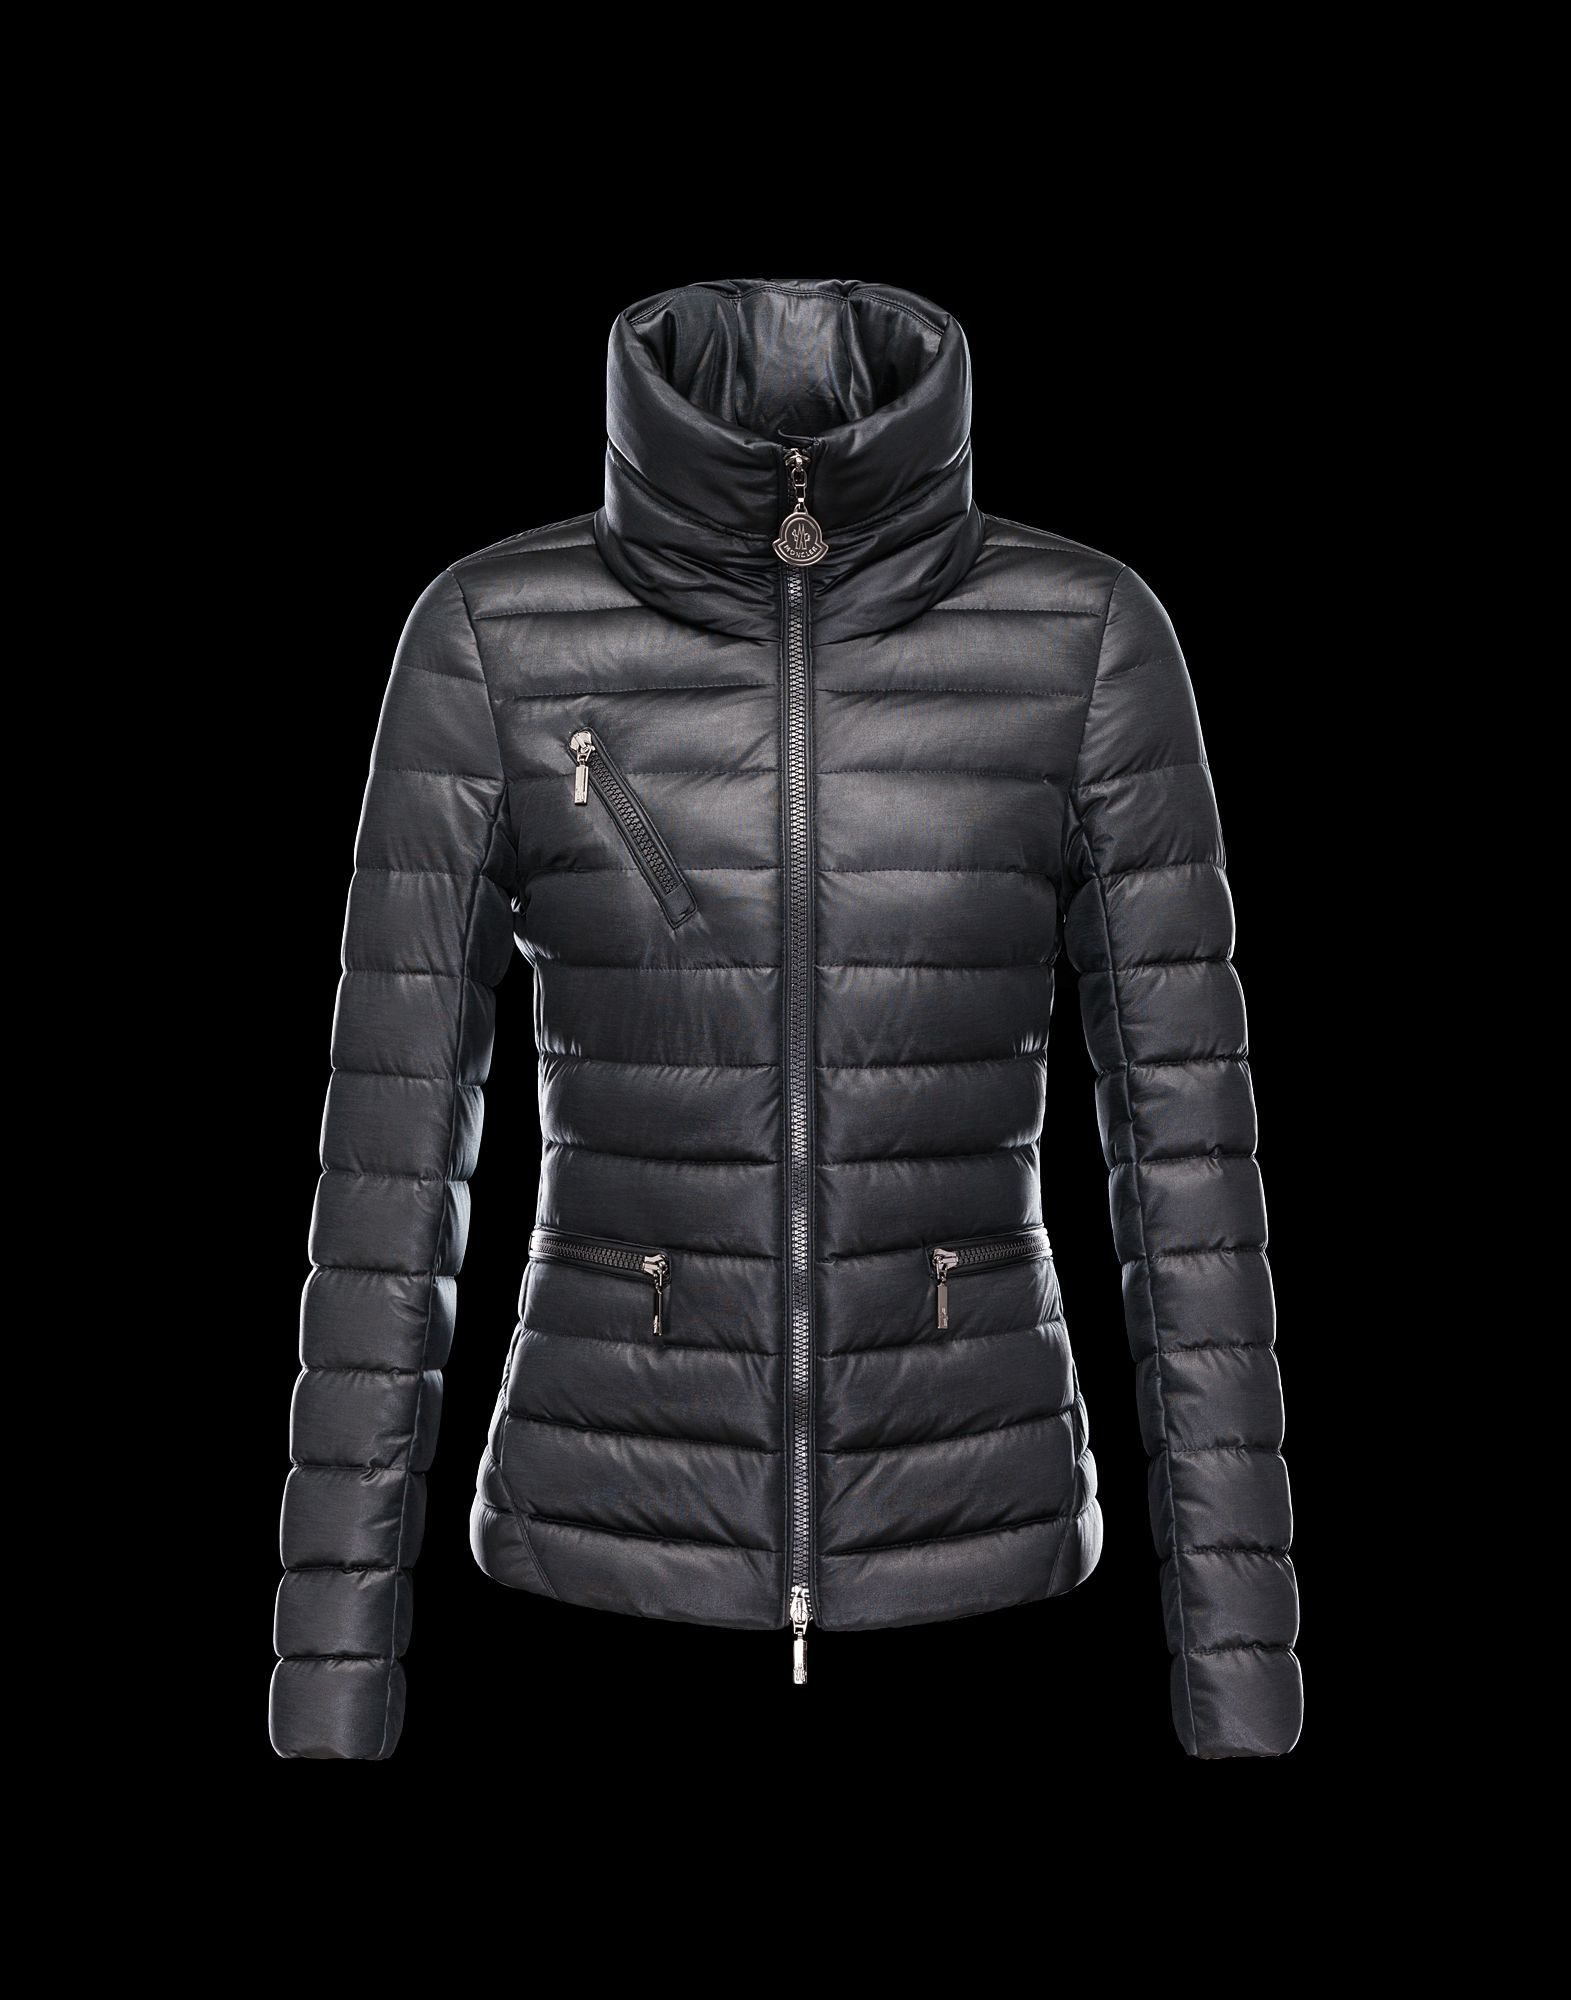 Shop now on Moncler-outletstore.com · Hooded JacketMonclerWomen's JacketsOutletsFashion TrendsWomen's FashionStreet StylesStyle CasualBlack Friday Sales